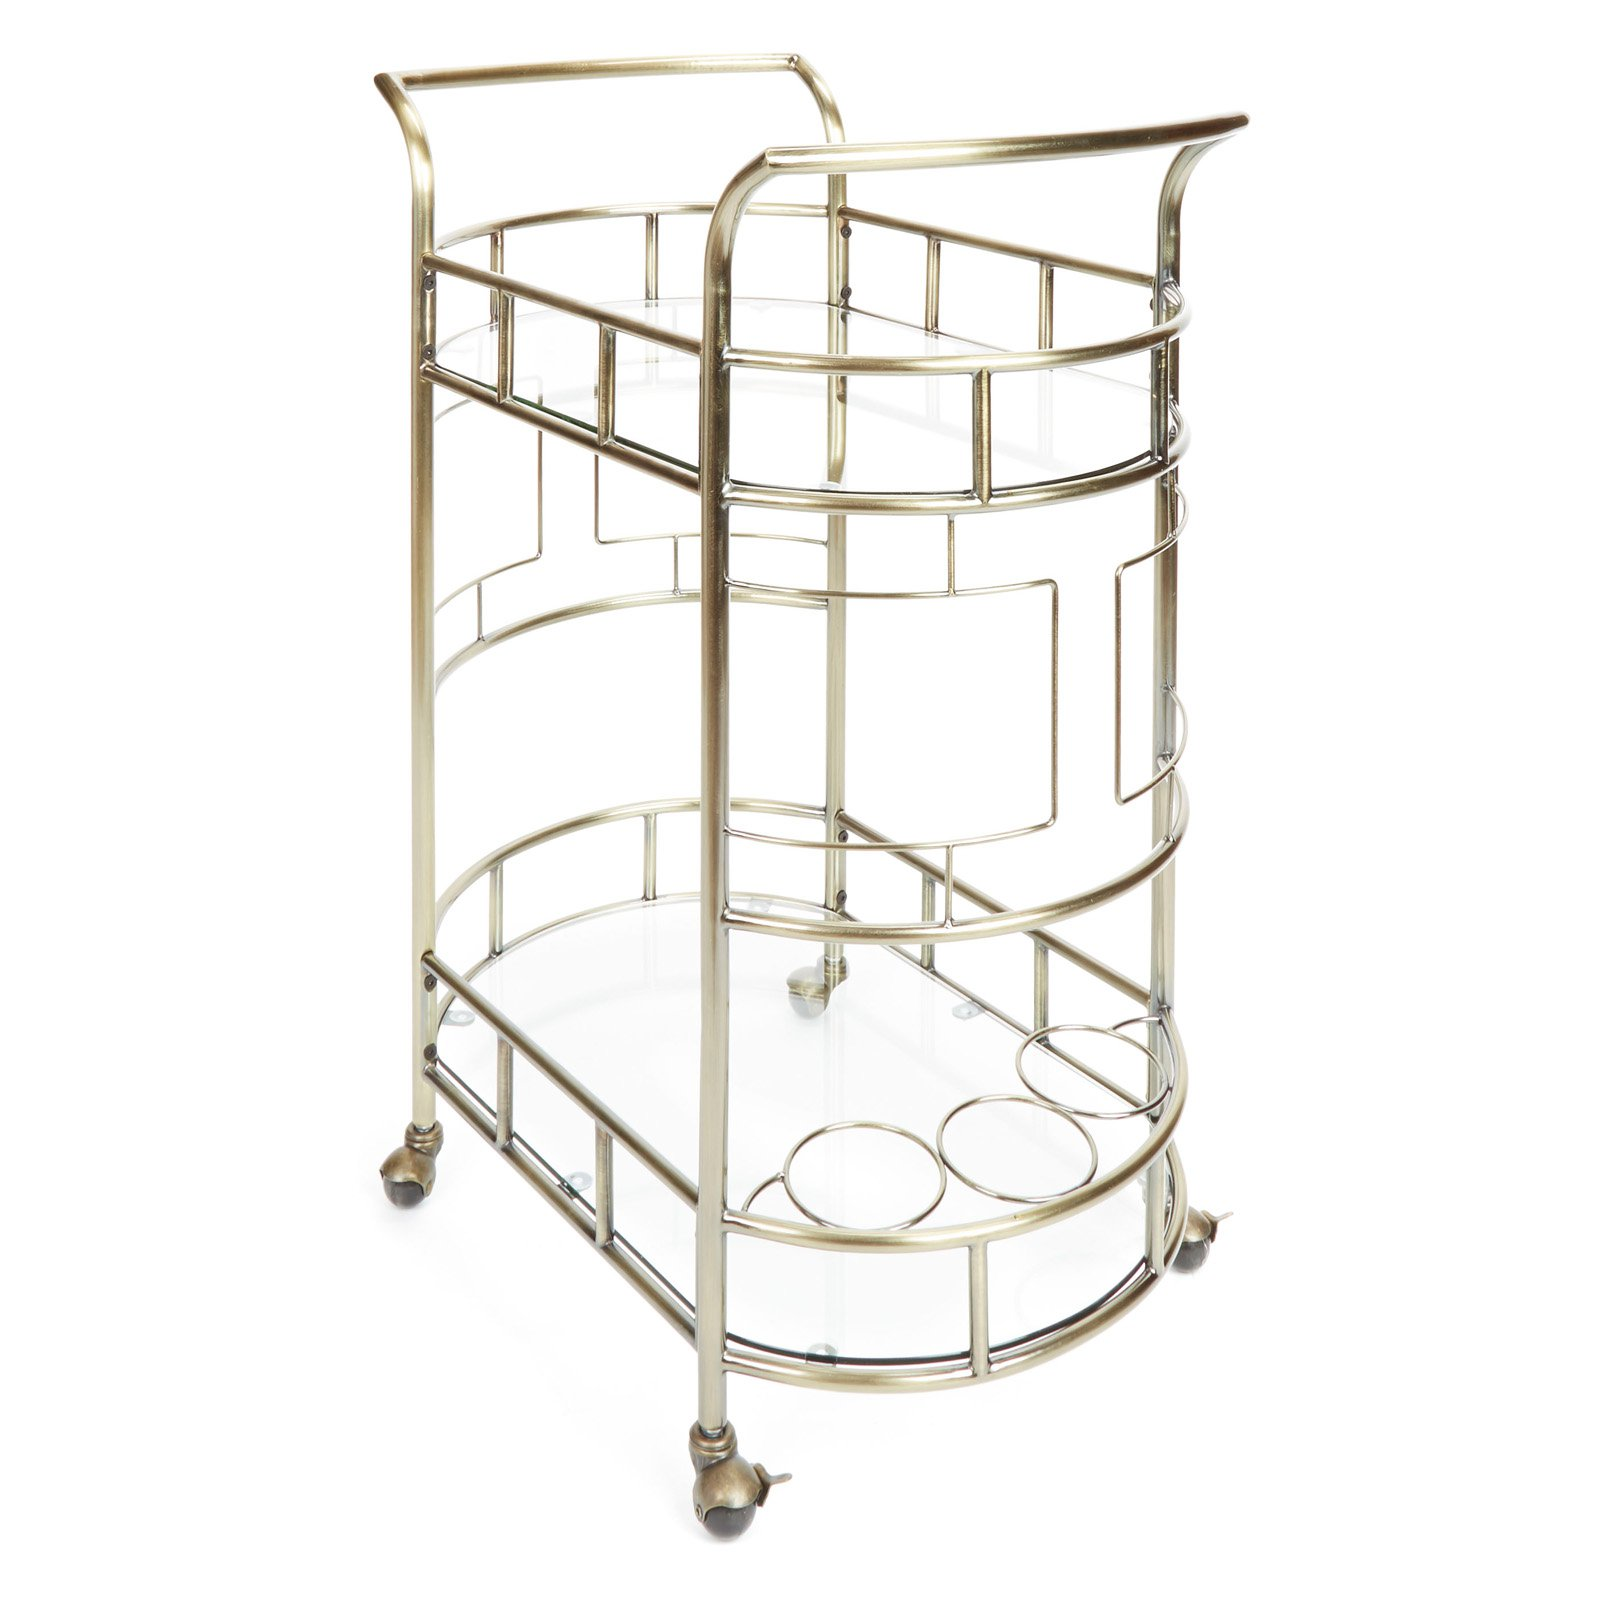 Sinclair 2-Tier Serving Cart in Antique Gold